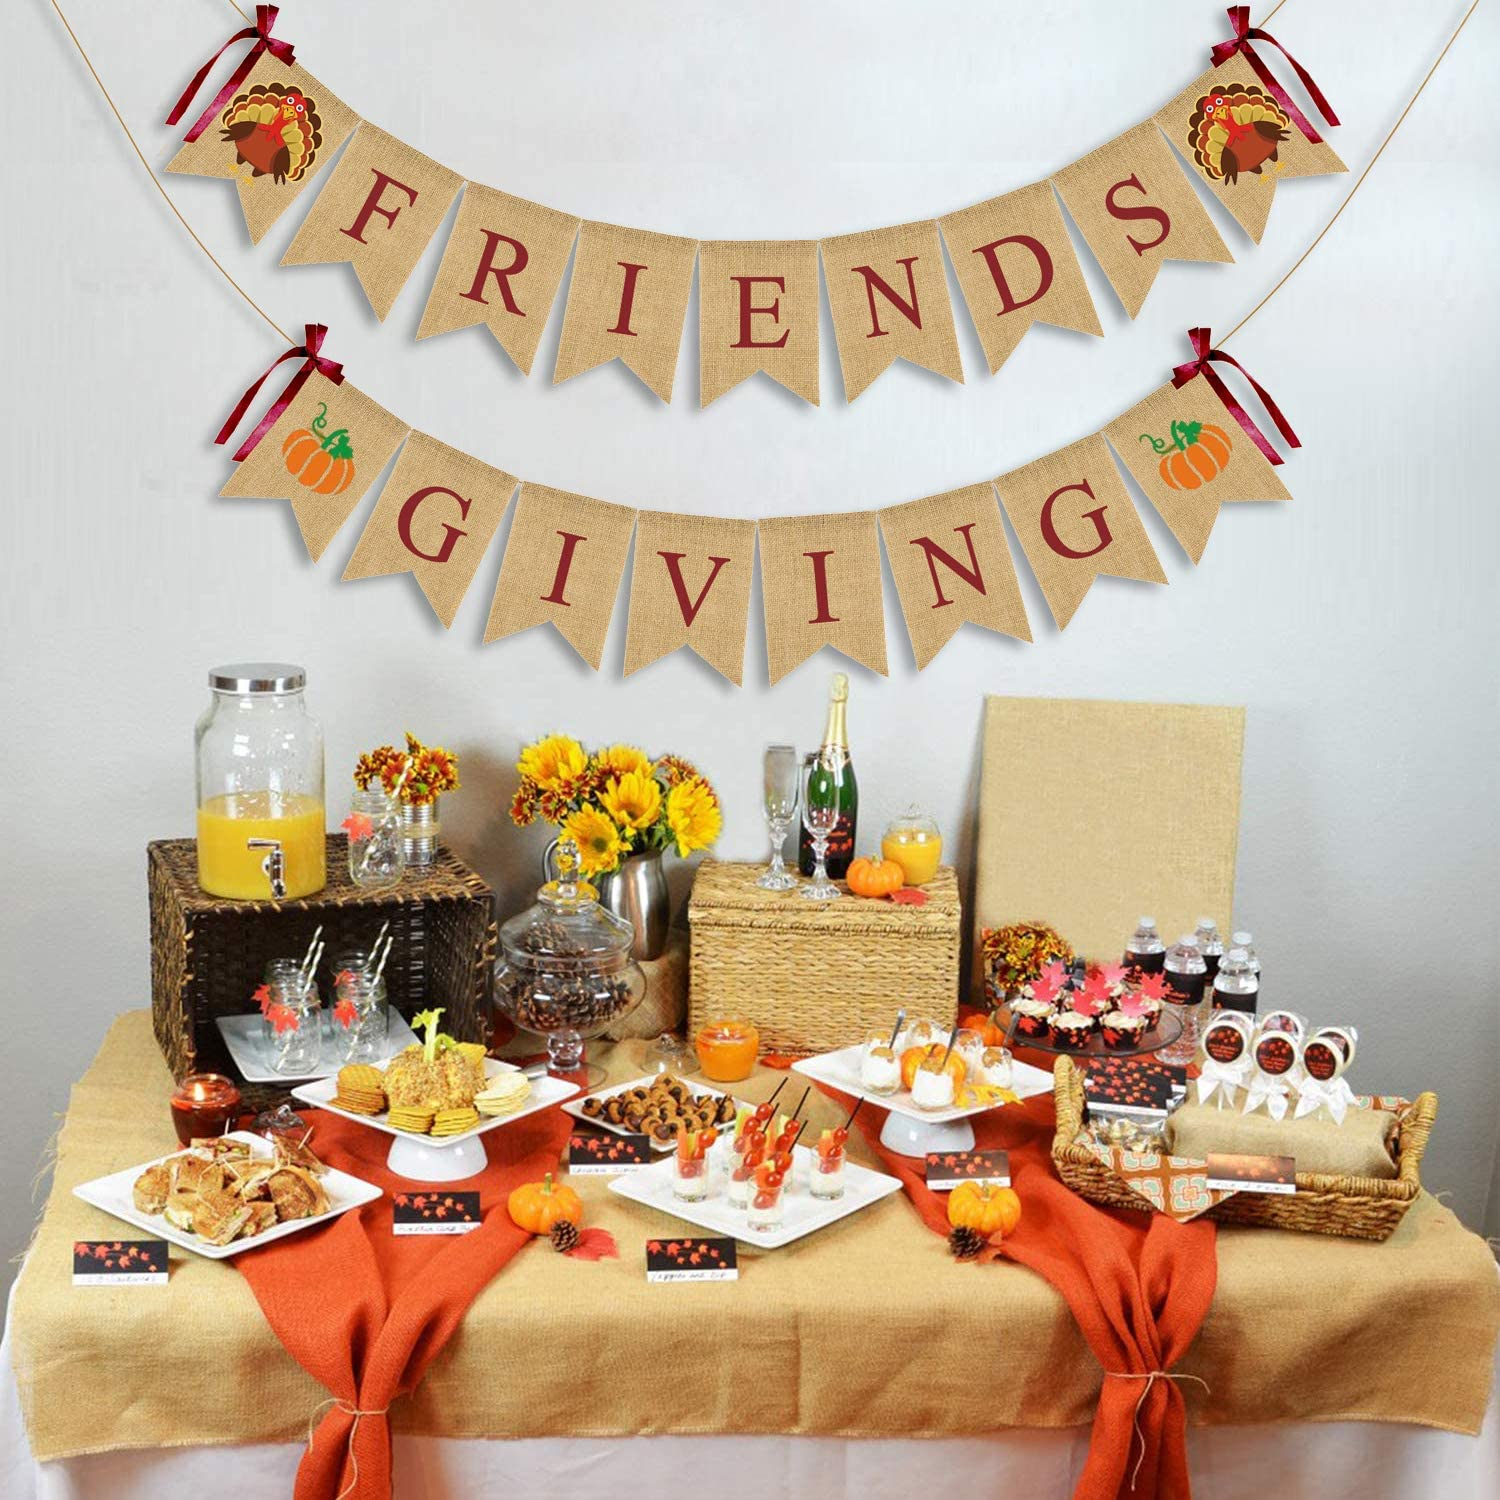 JOZON Friendsgiving Burlap Banner Thanksgiving Bunting Banner Garland with Turkey Pumpkin Sign for Thanksgiving Party Decorations Friends Giving Decor for Mantle Fireplace Wall Party Supplies